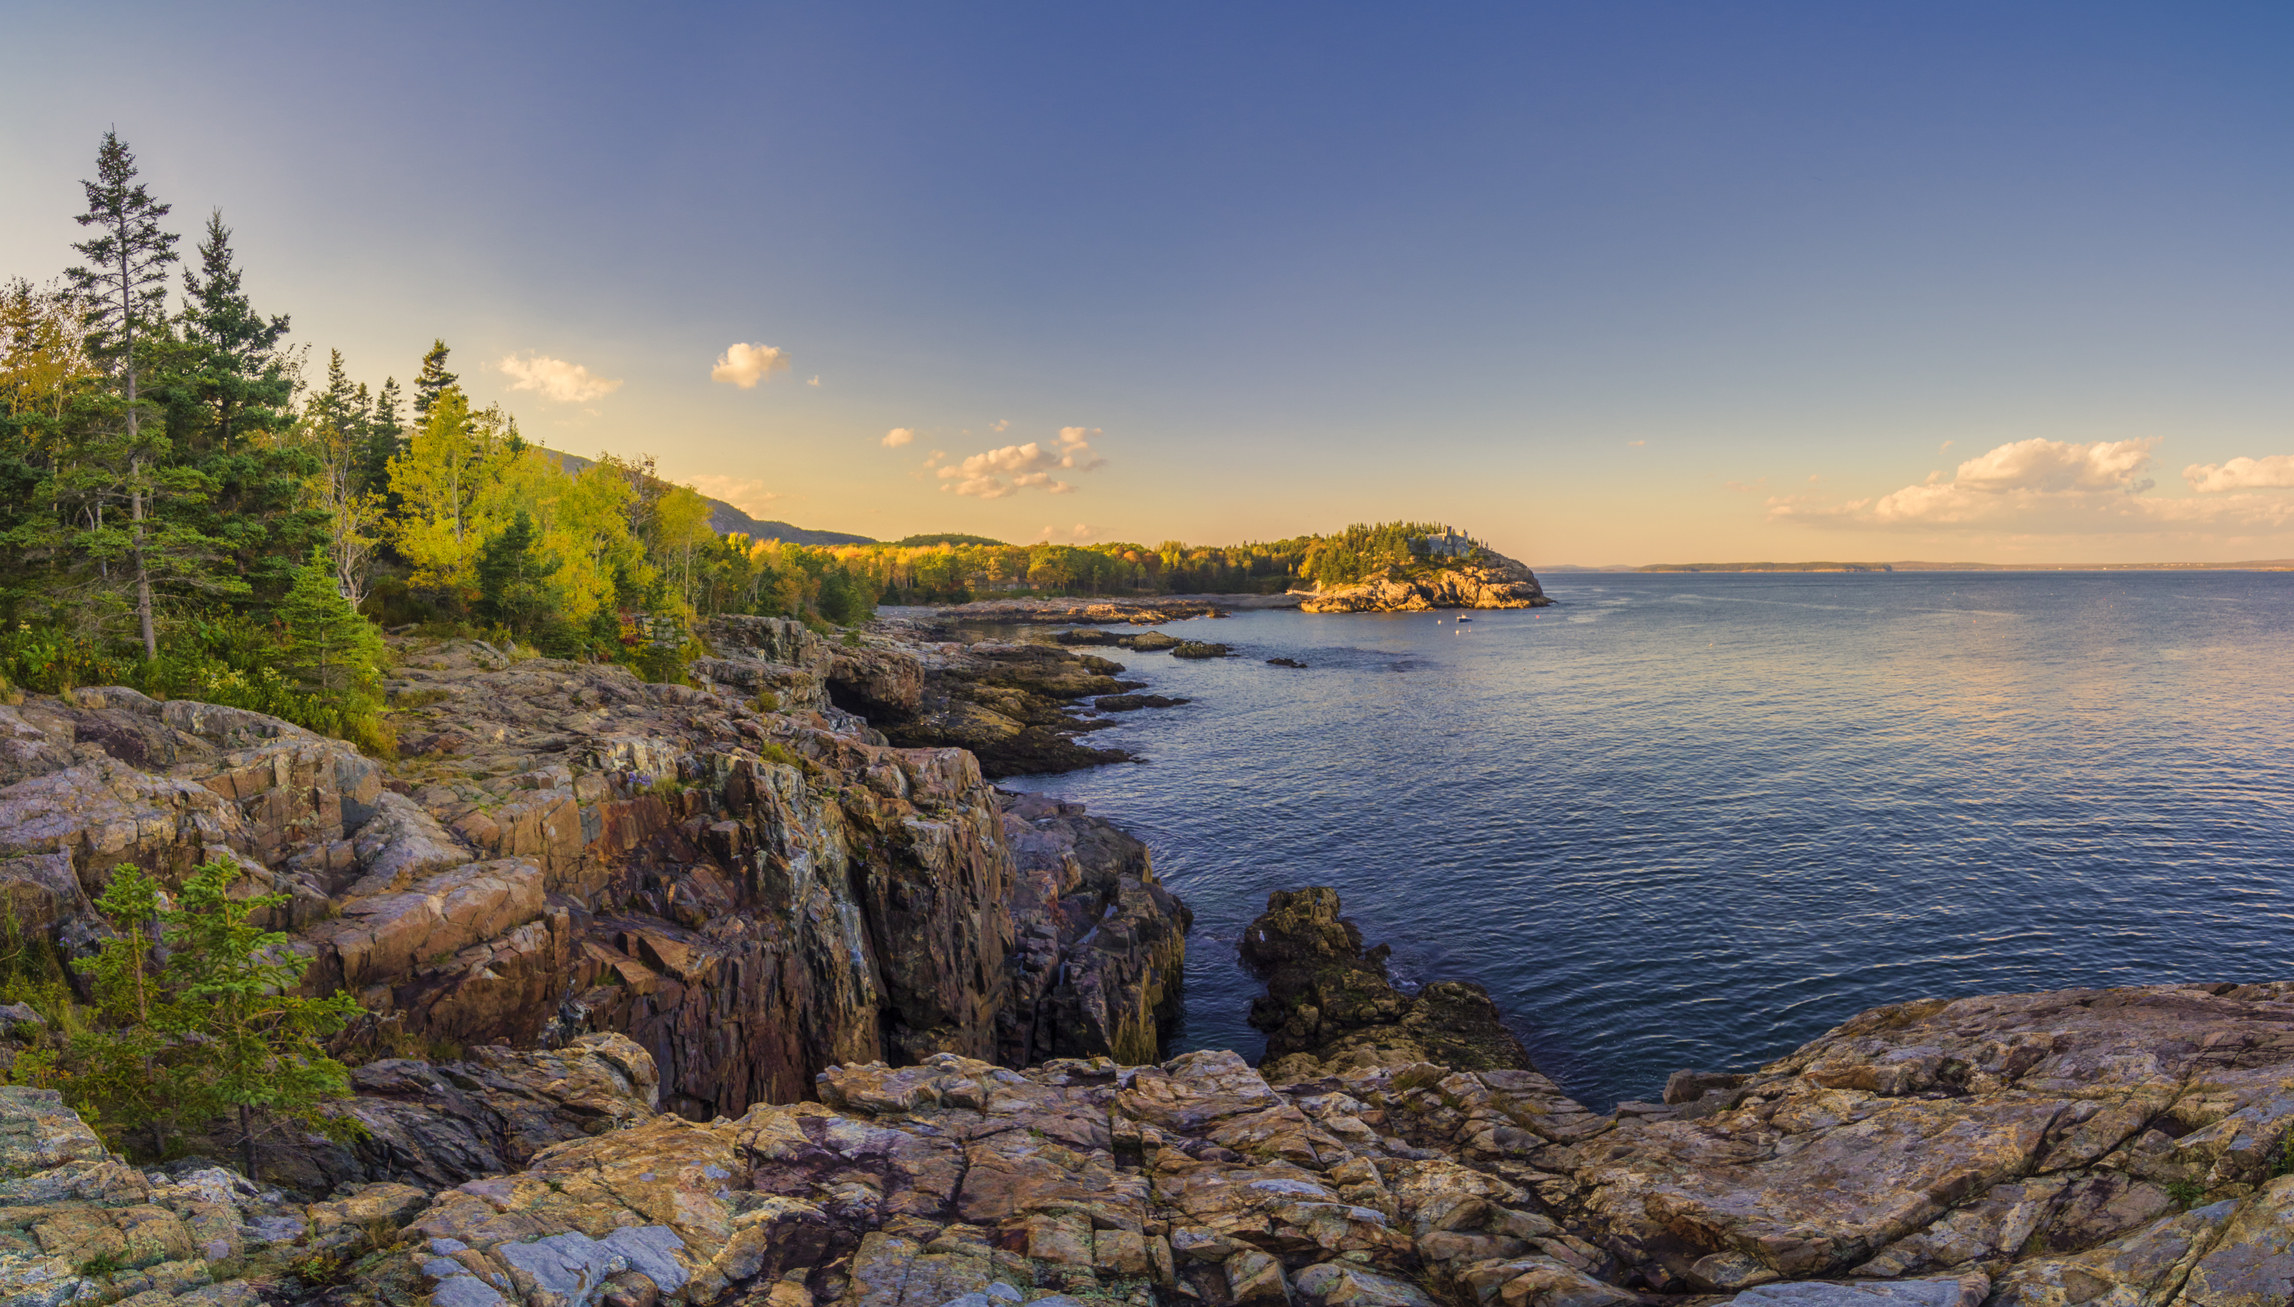 Rocks and trees leading down to the water at Schooner Head